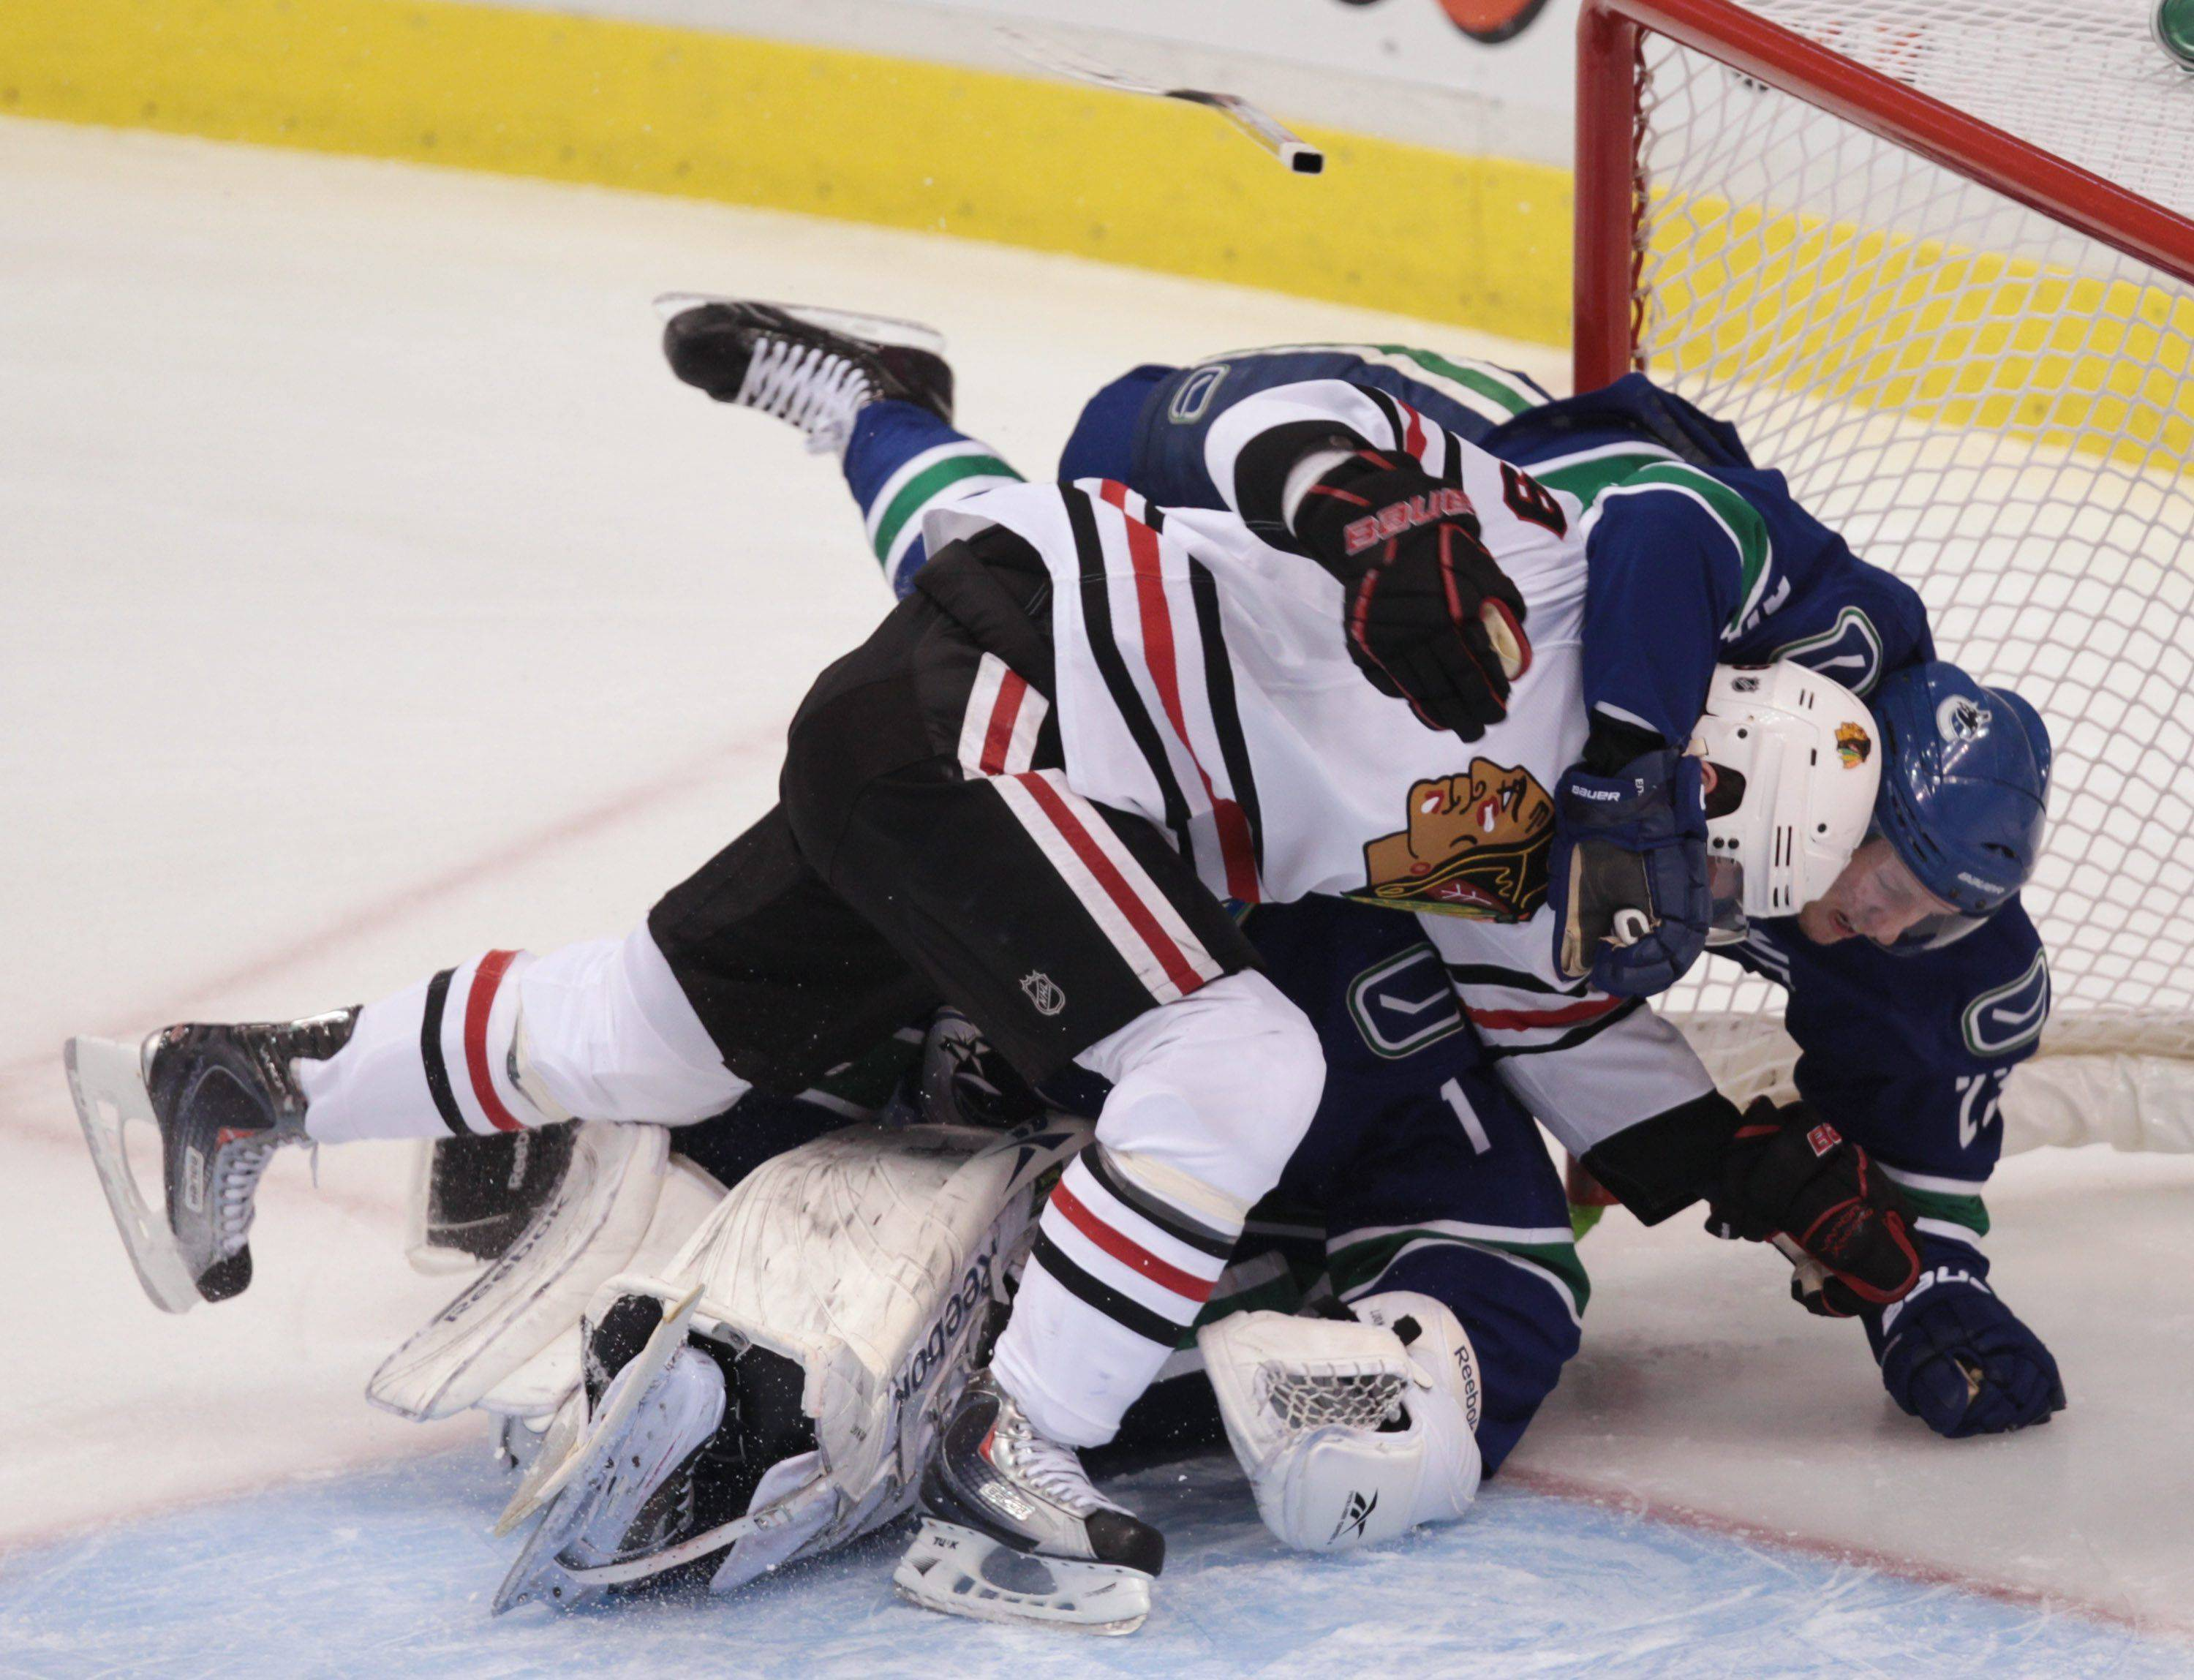 Chicago Blackhawks' Jonathan Toews, left, and Vancouver Canucks' Alexander Edler crash into Canucks' goalie Roberto Luongo, back, during the first period.